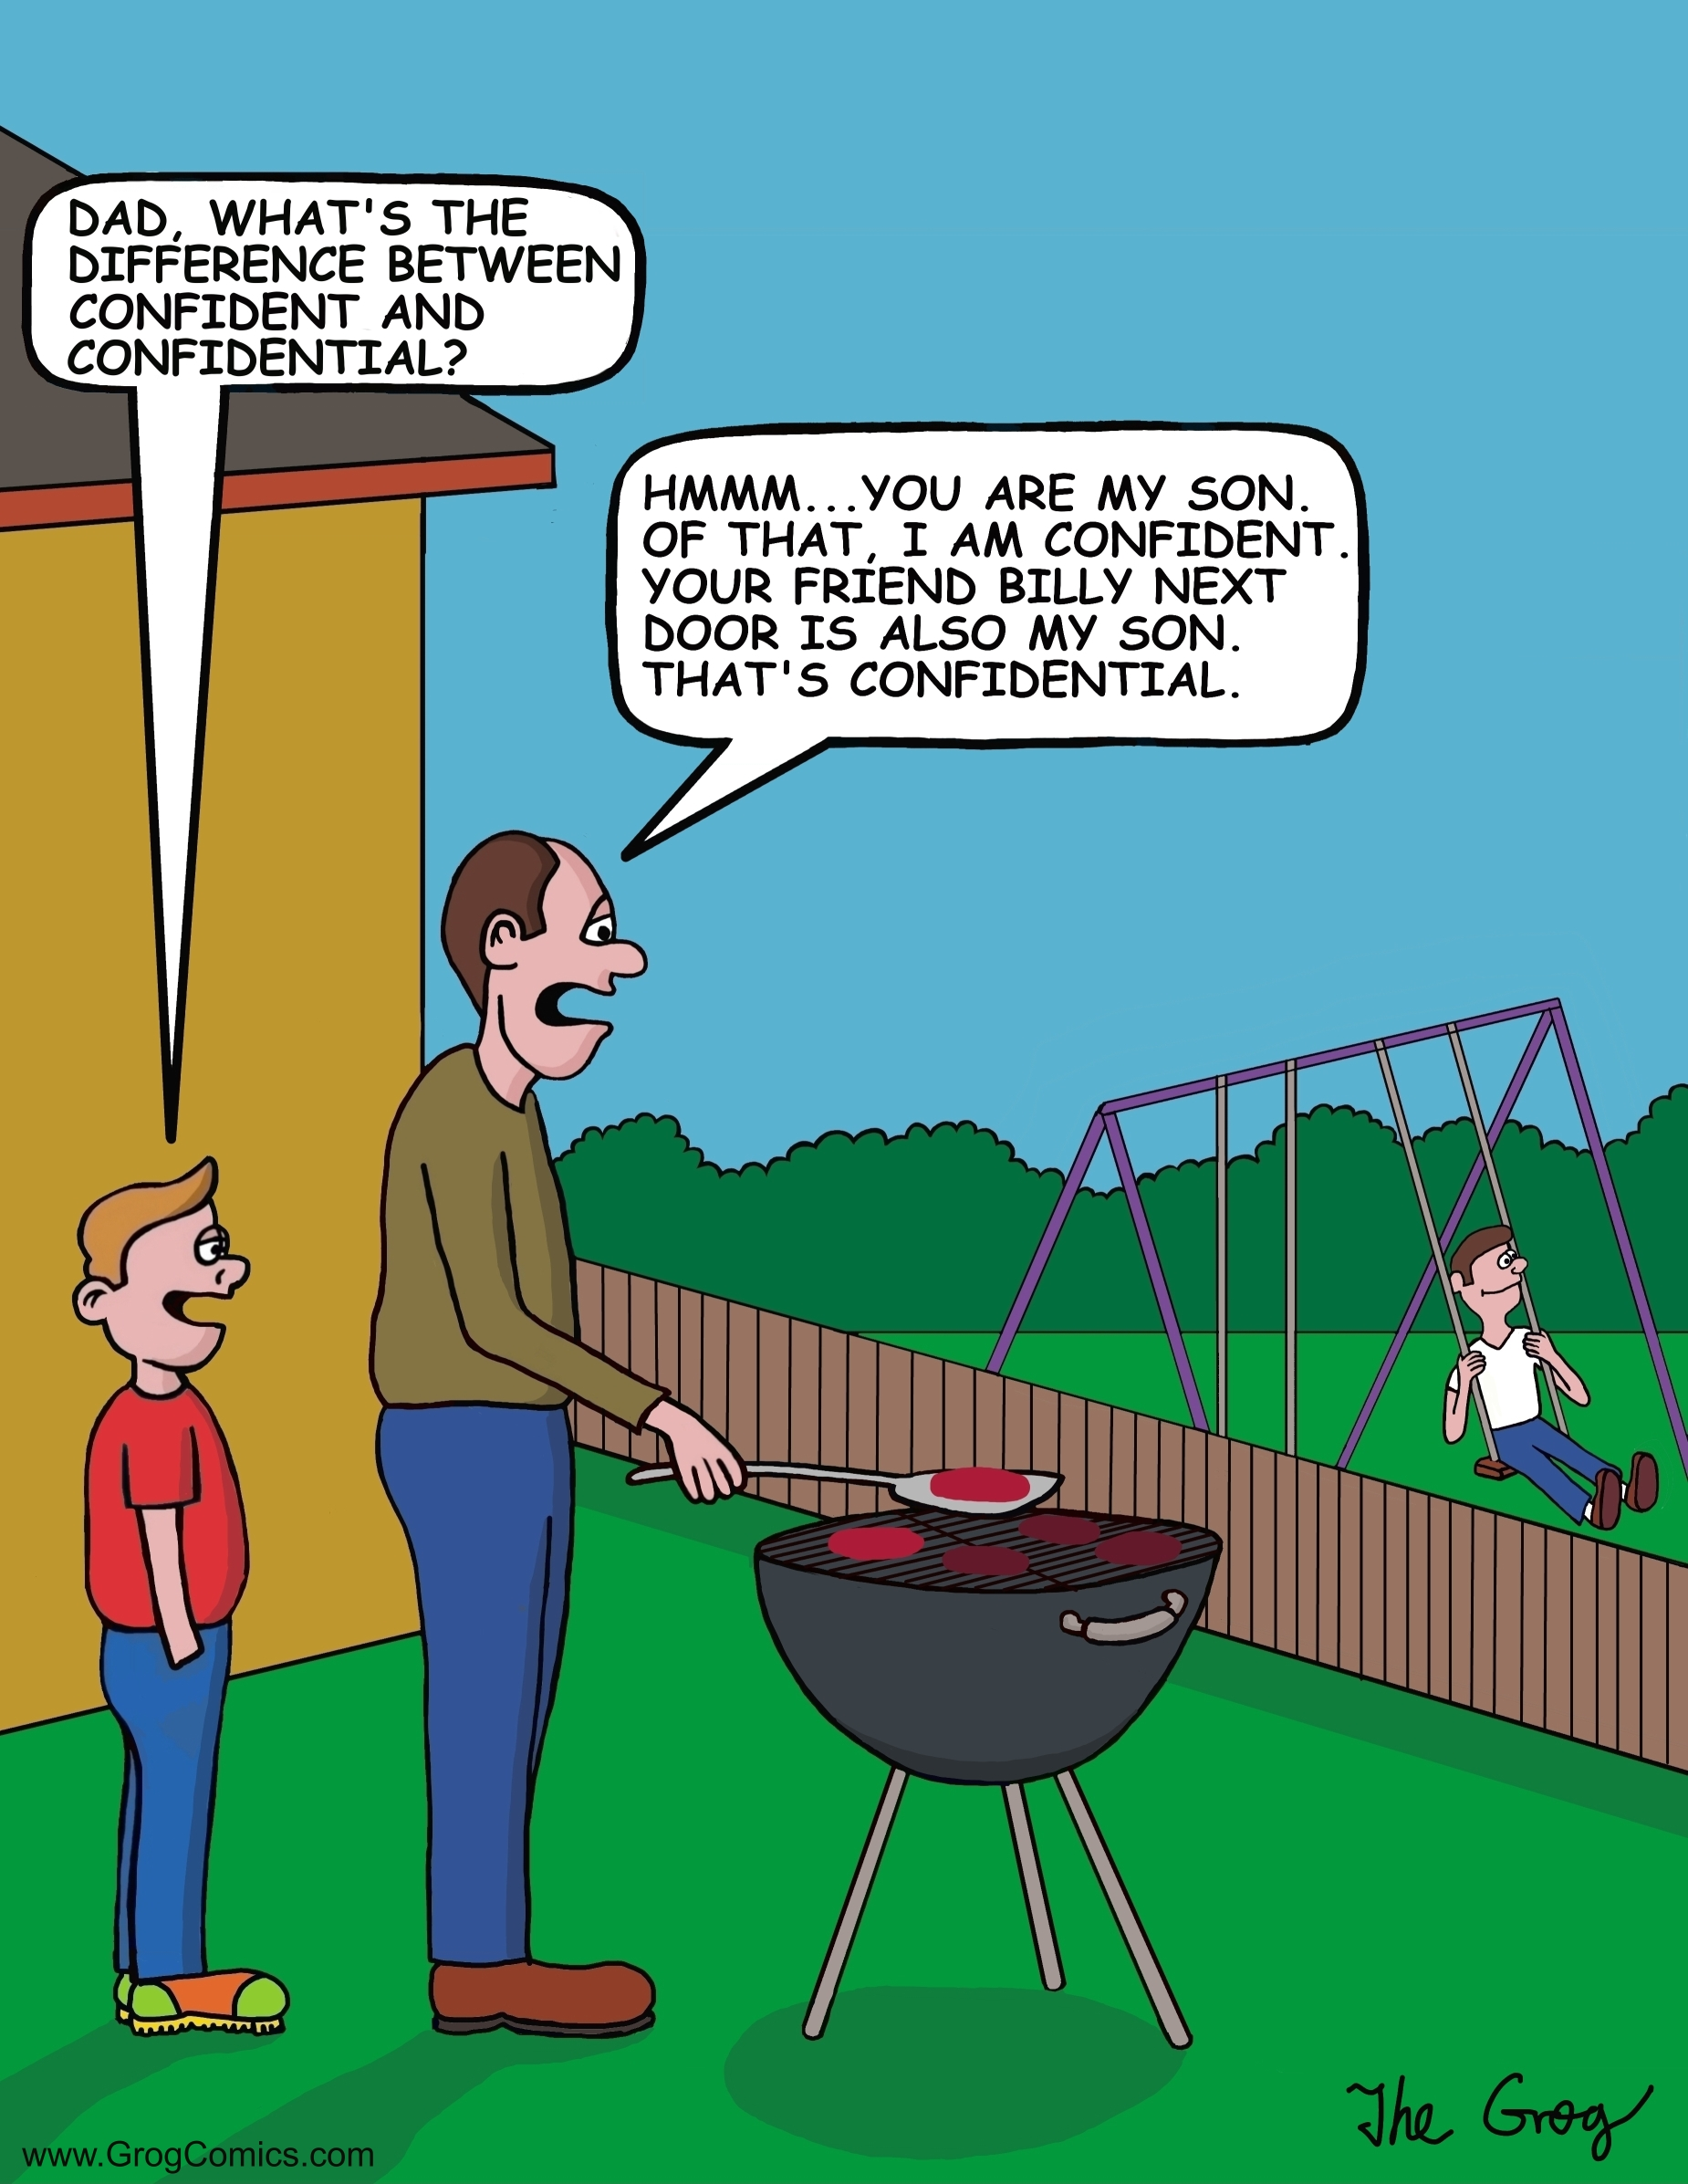 """As a man barbecues in his backyard, his son walks up to him and asks him a question. """"Dad, what's the difference between confident and confidential?"""", asks the son. The father says, """"Hmmm...you are my son. Of that, I am confident. Your friend Billy next door is also my son. That's confidential""""."""